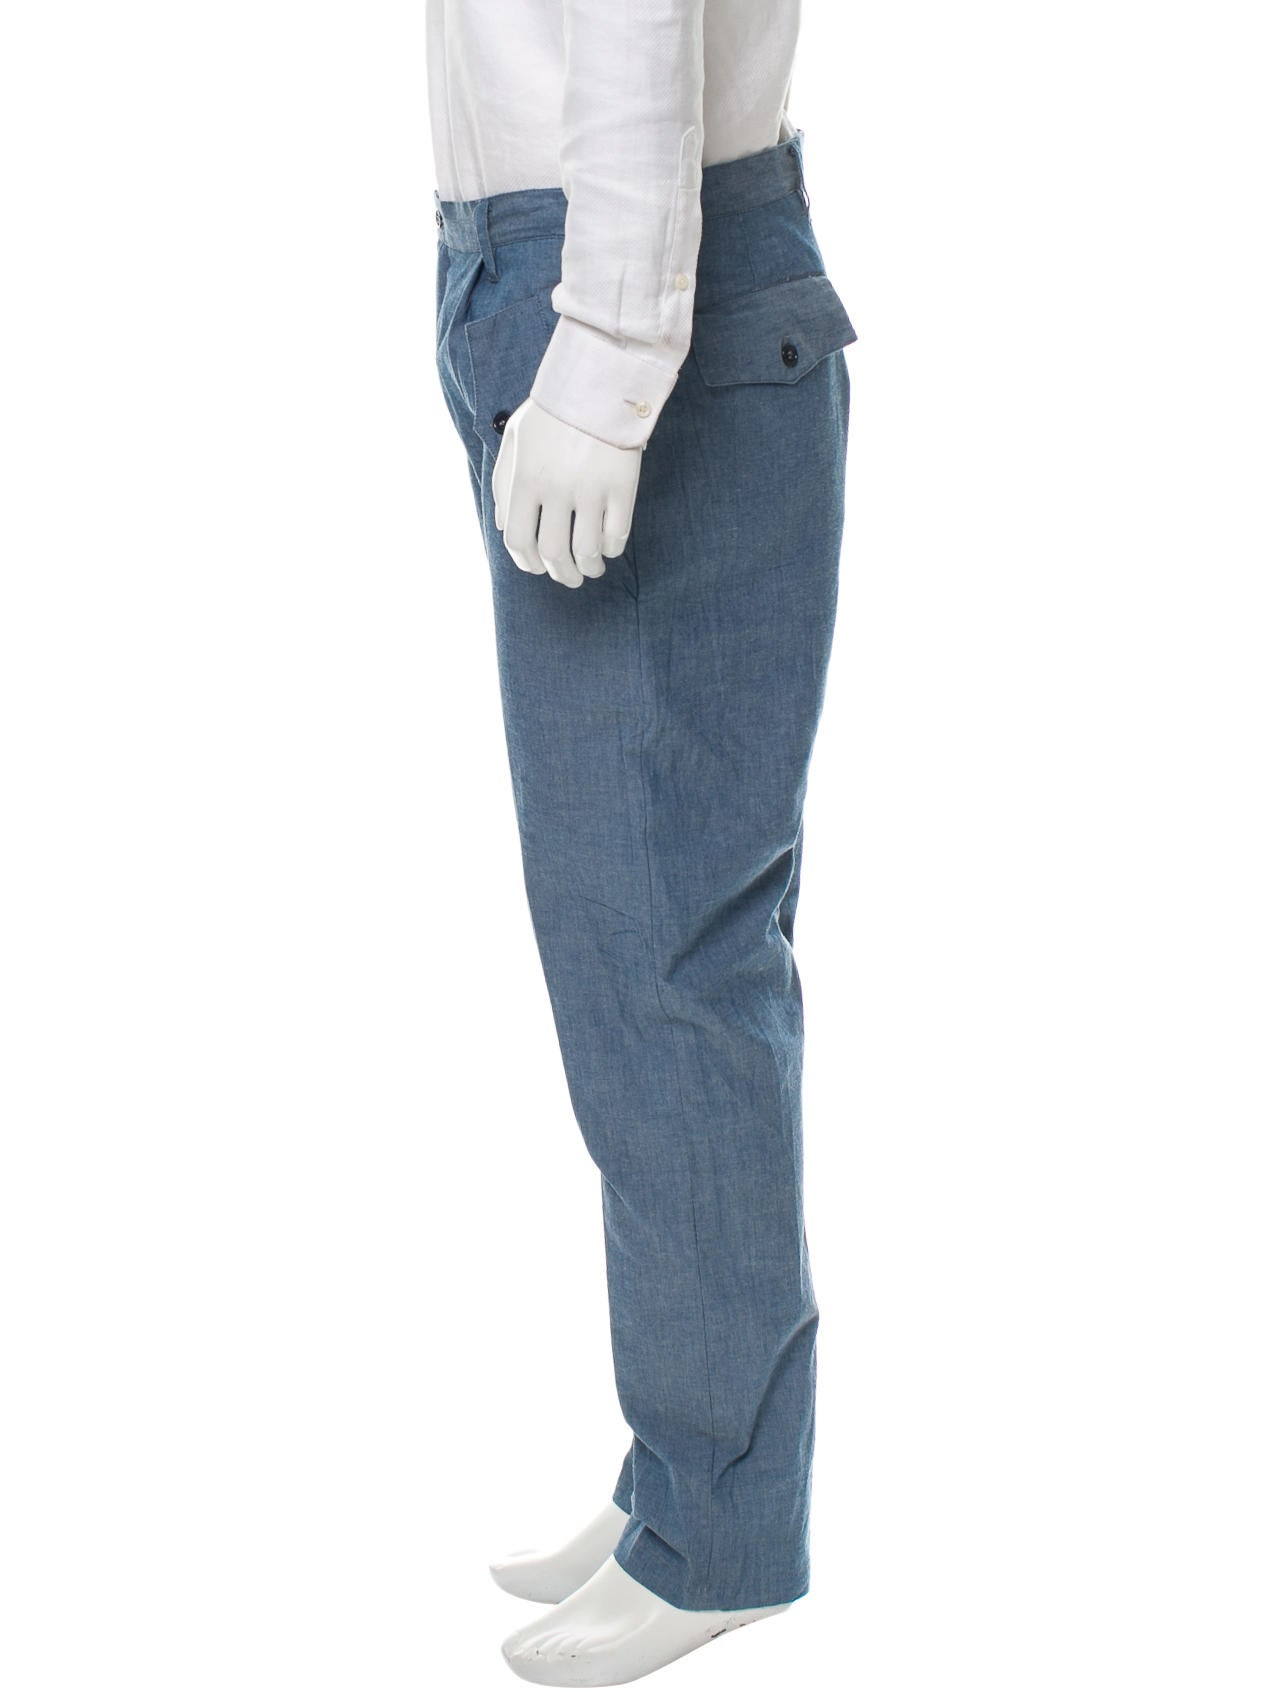 Camo chambray pants clothing wwcmo20016 the realreal for Chambray jeans